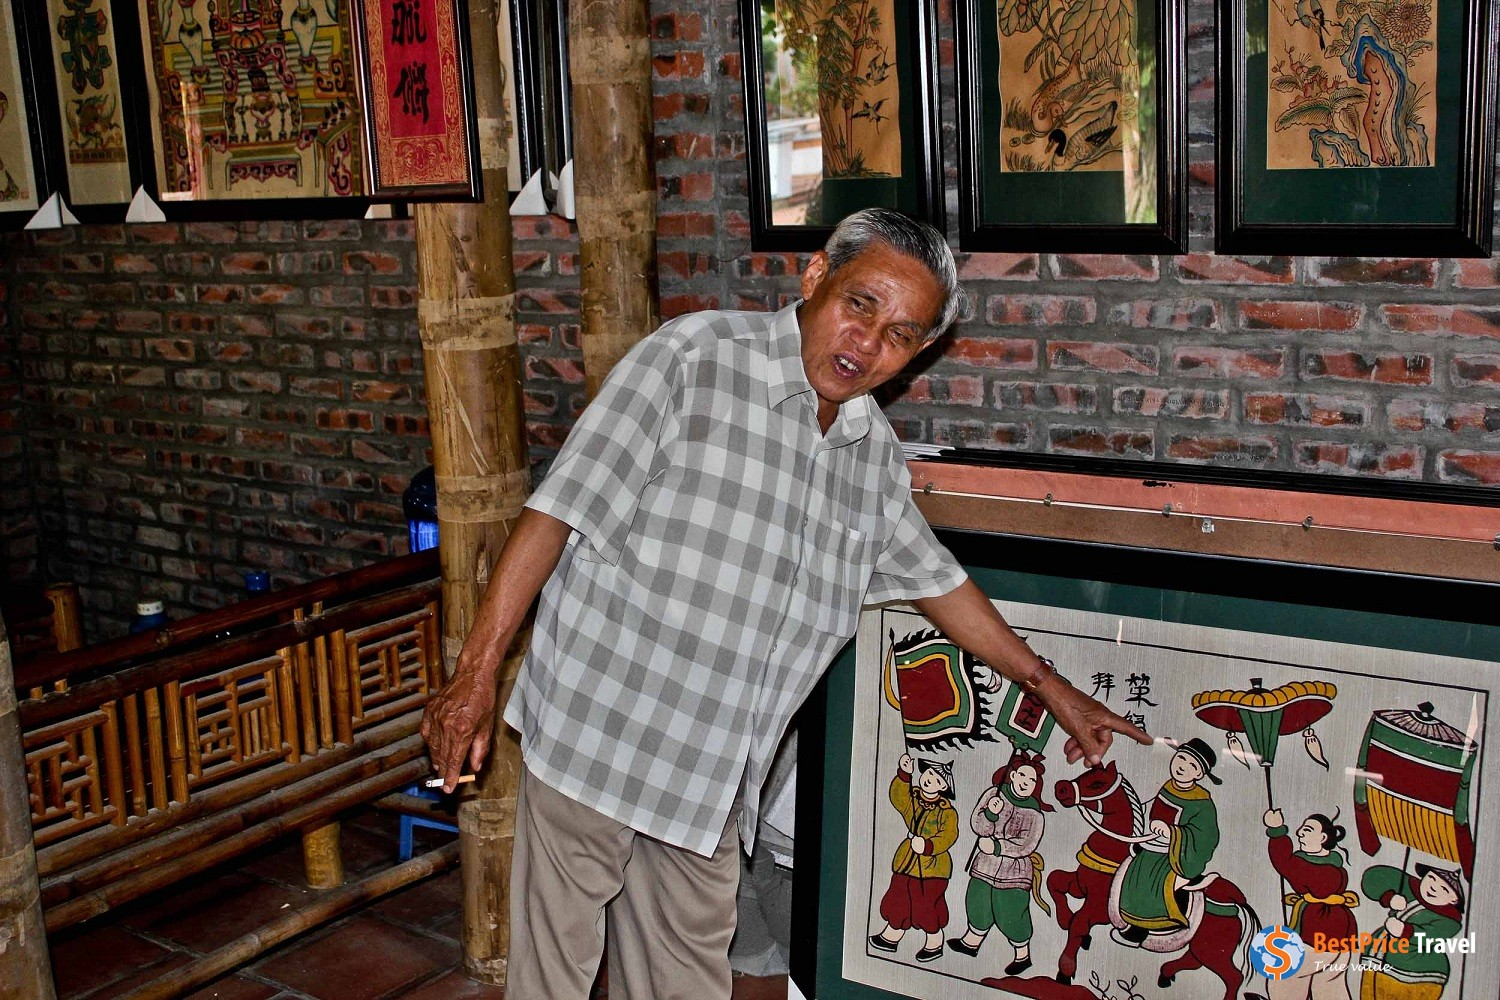 Local artisan explaining the concept of the painting.